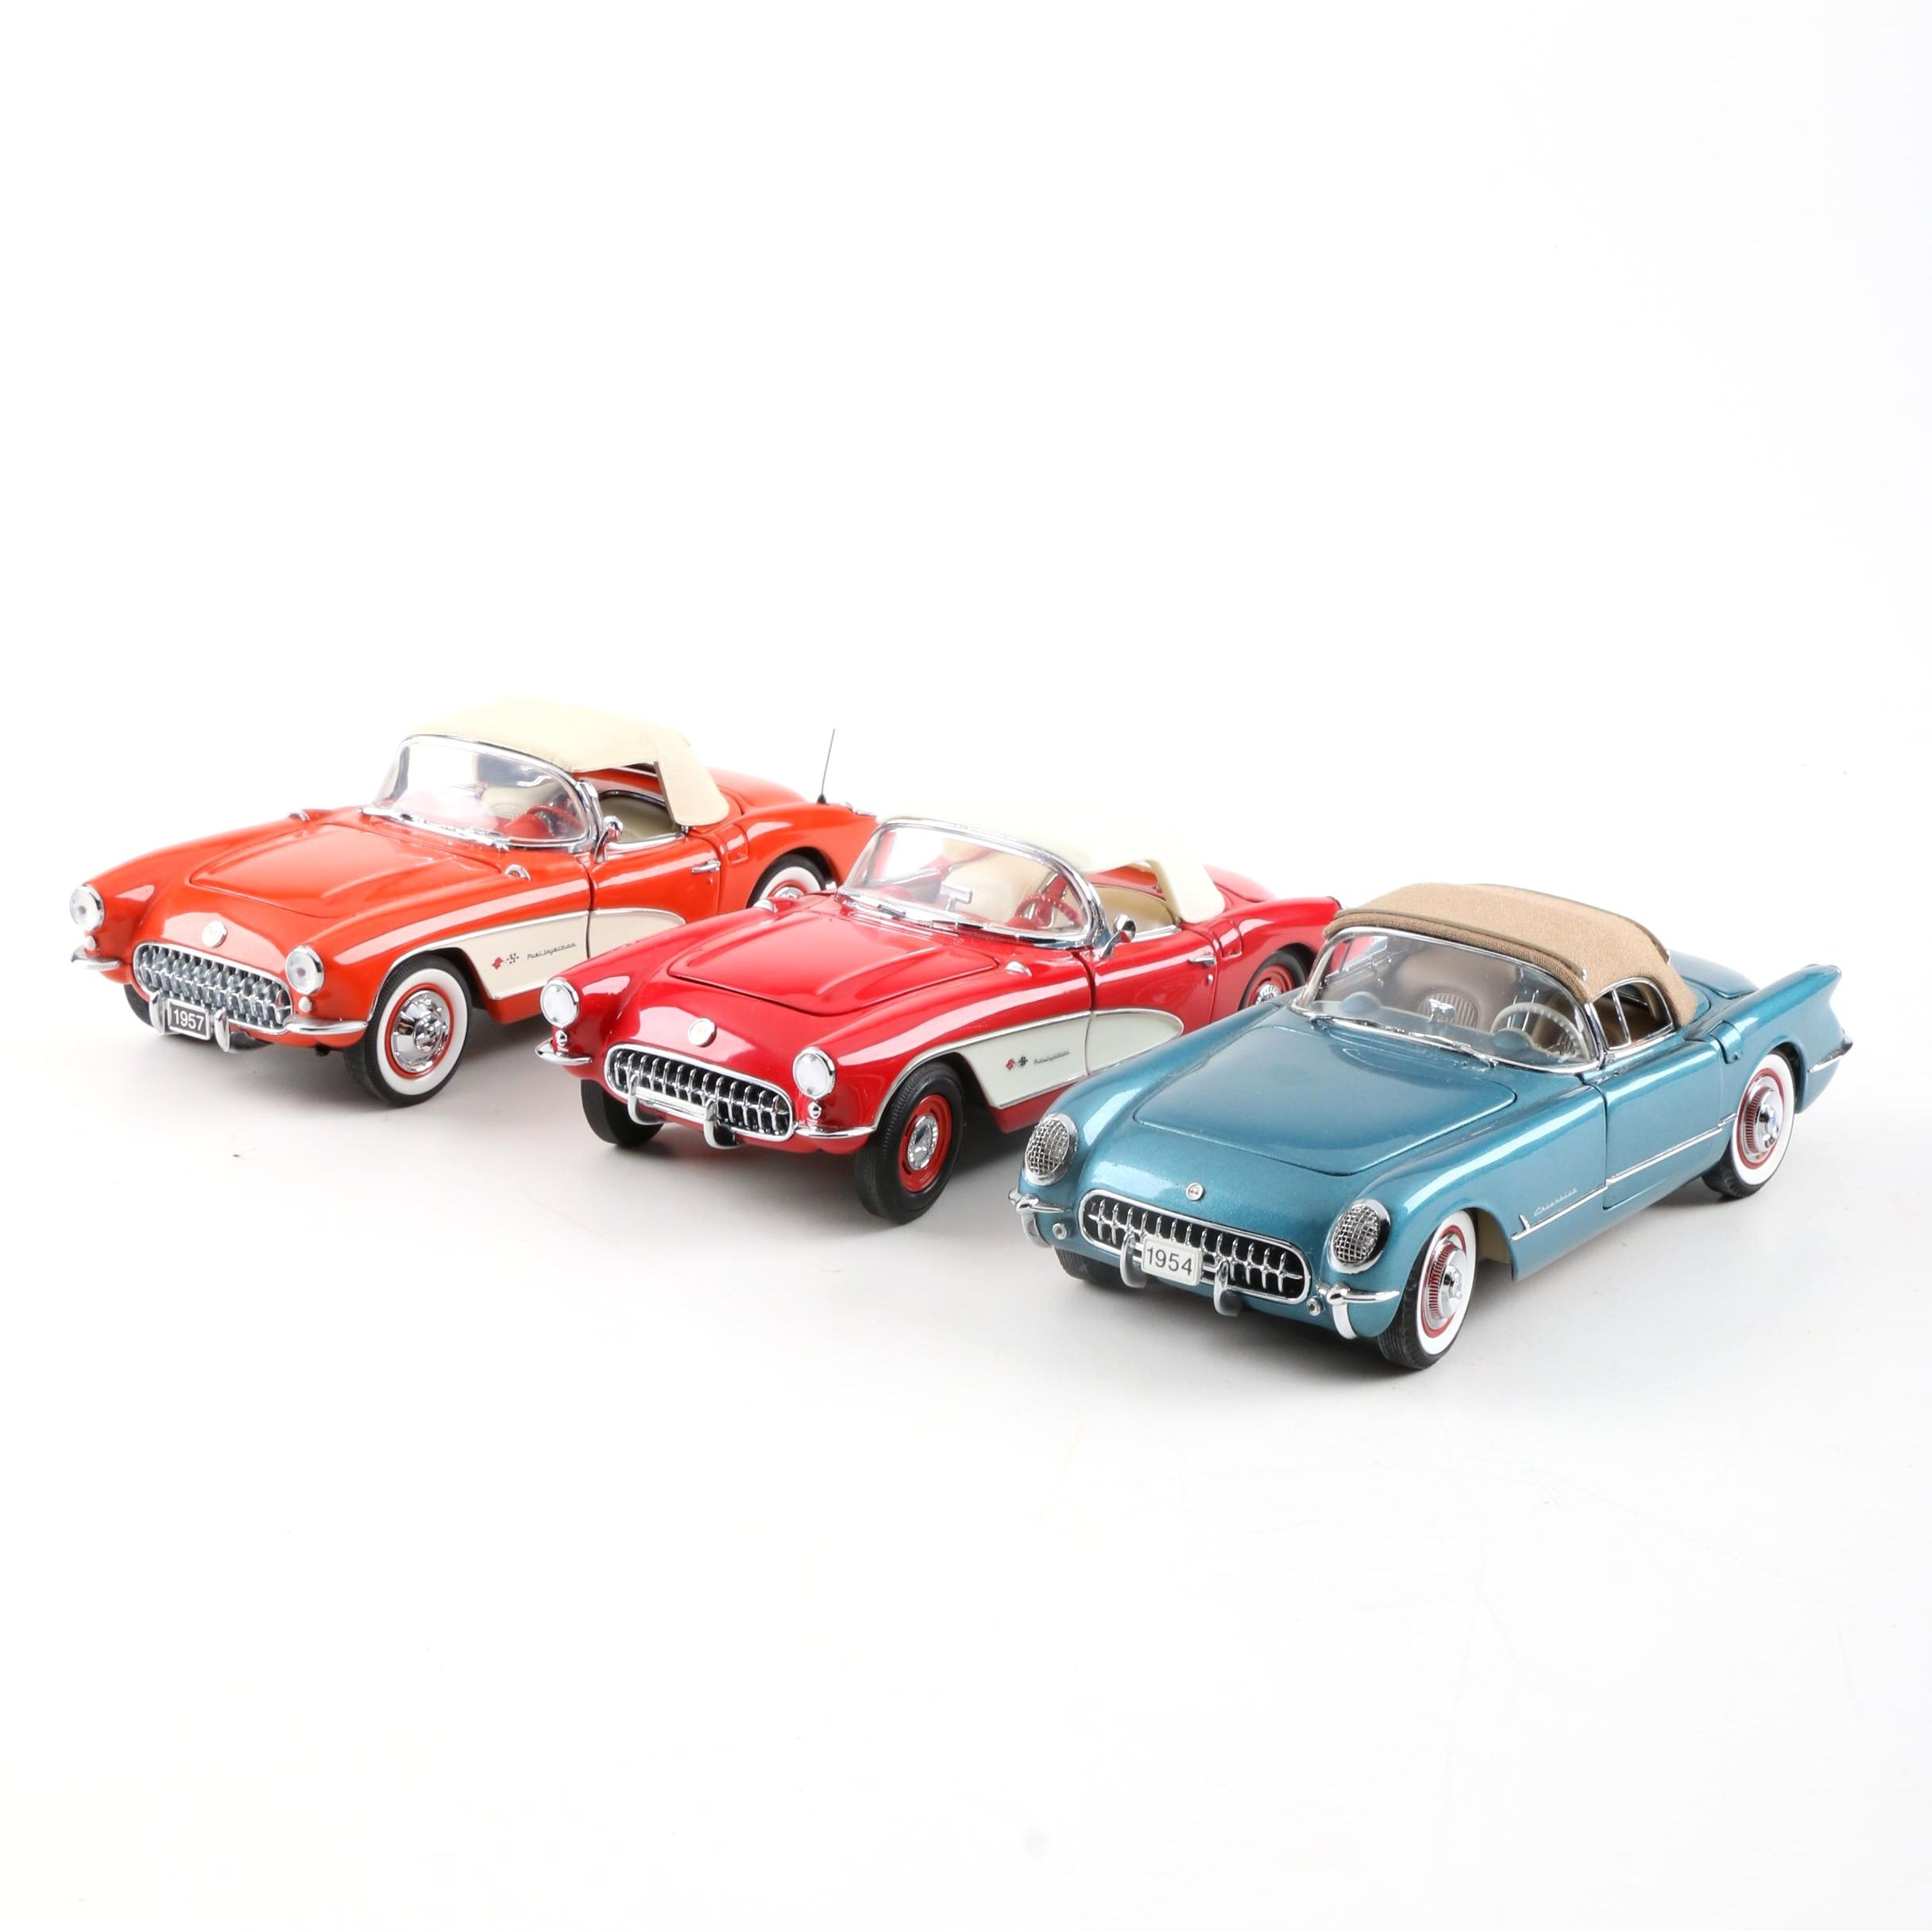 1950s Corvette Die-Cast Cars